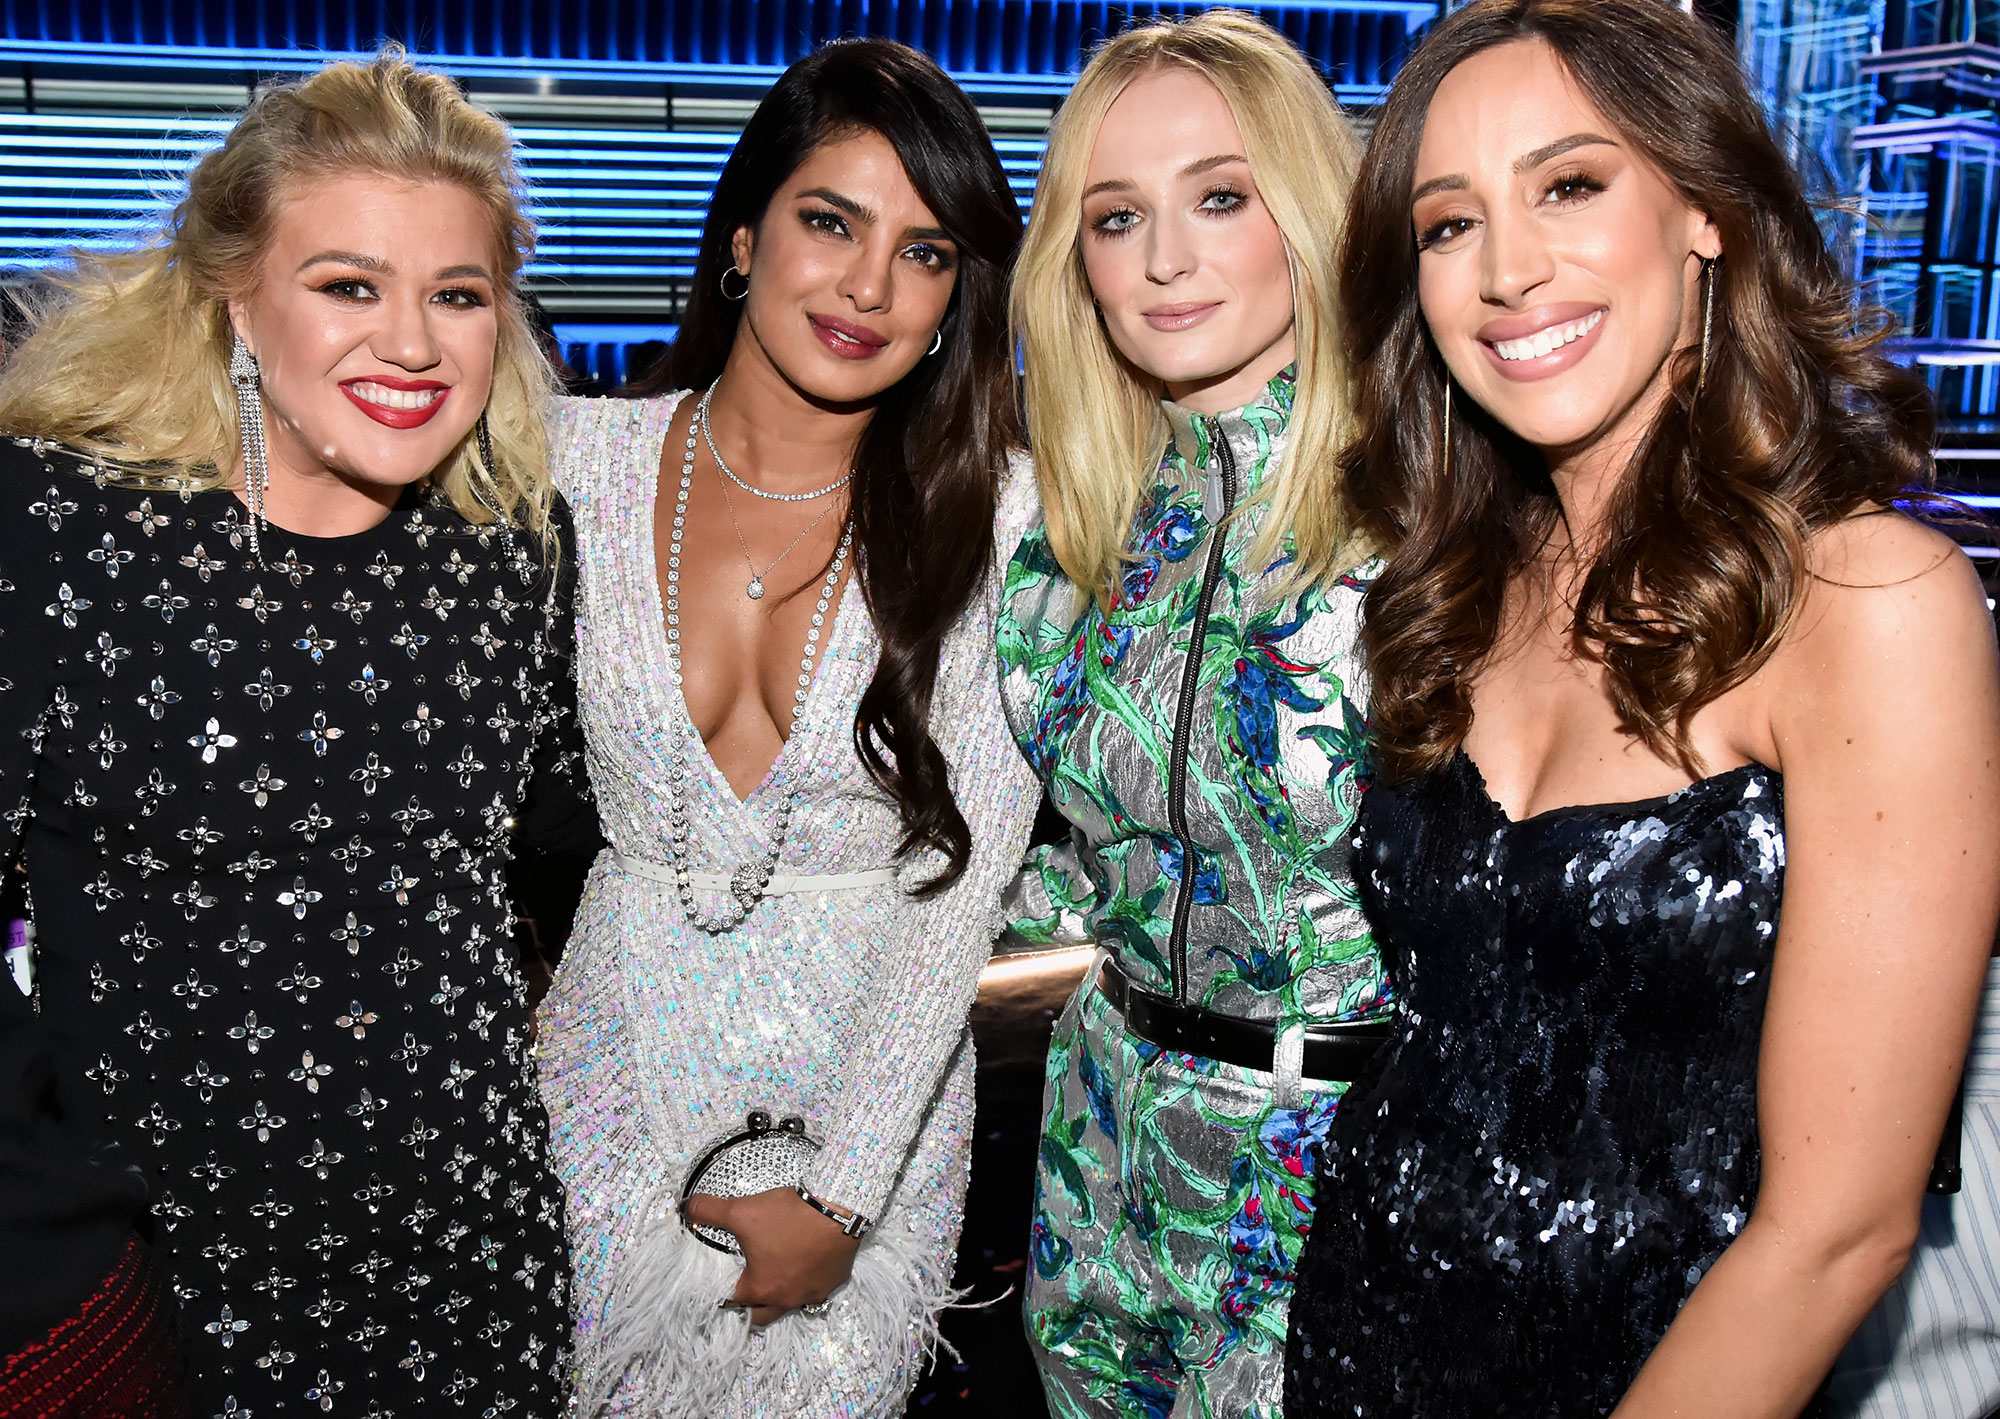 Kelly Clarkson, Priyanka Chopra, Sophie Turner, and Danielle Jonas